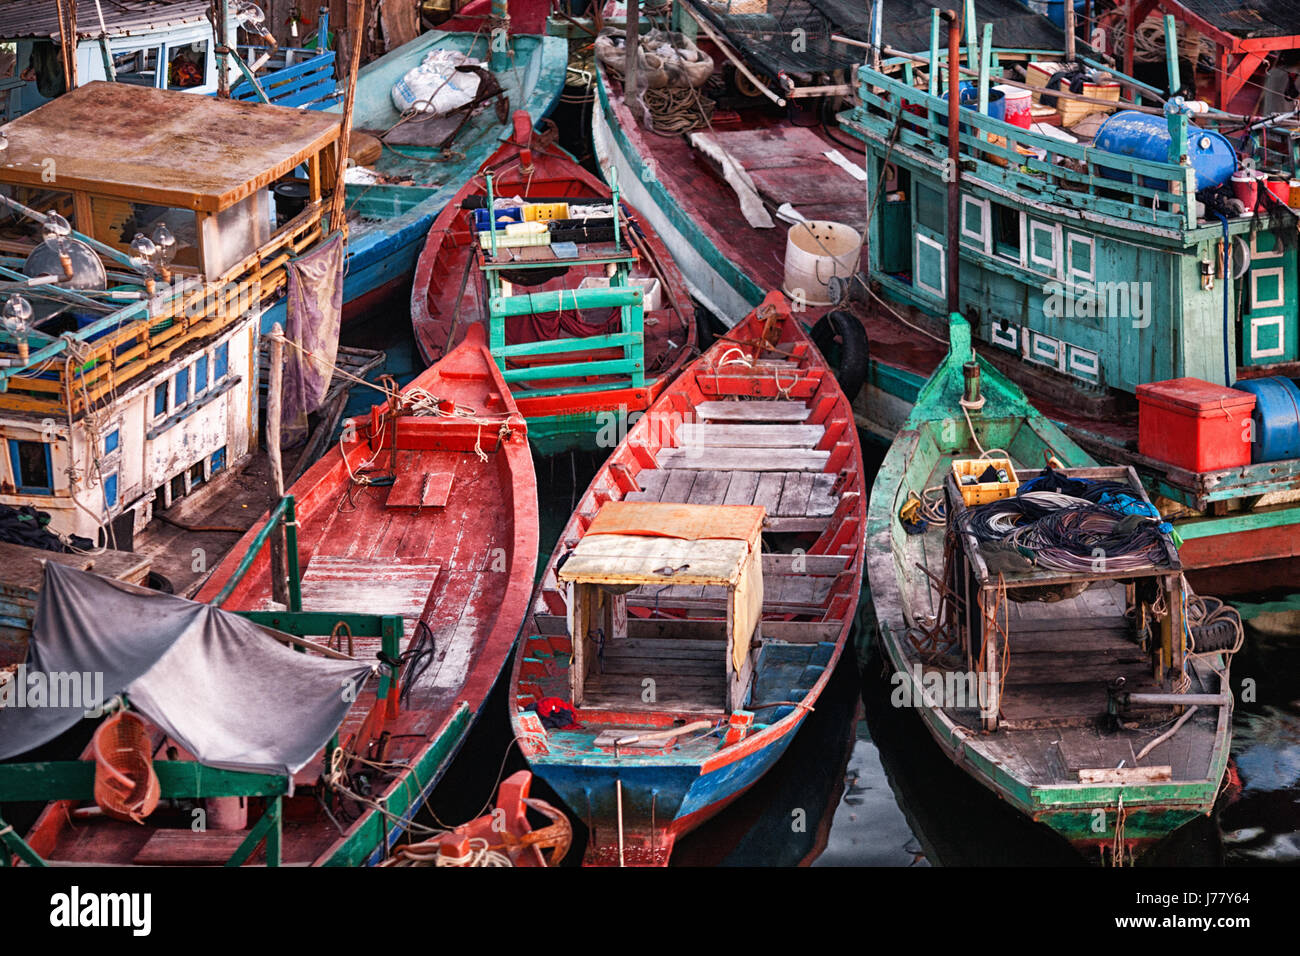 Fishing boats tied up in the harbour on Phu Quoc Island, Vietnam - Stock Image